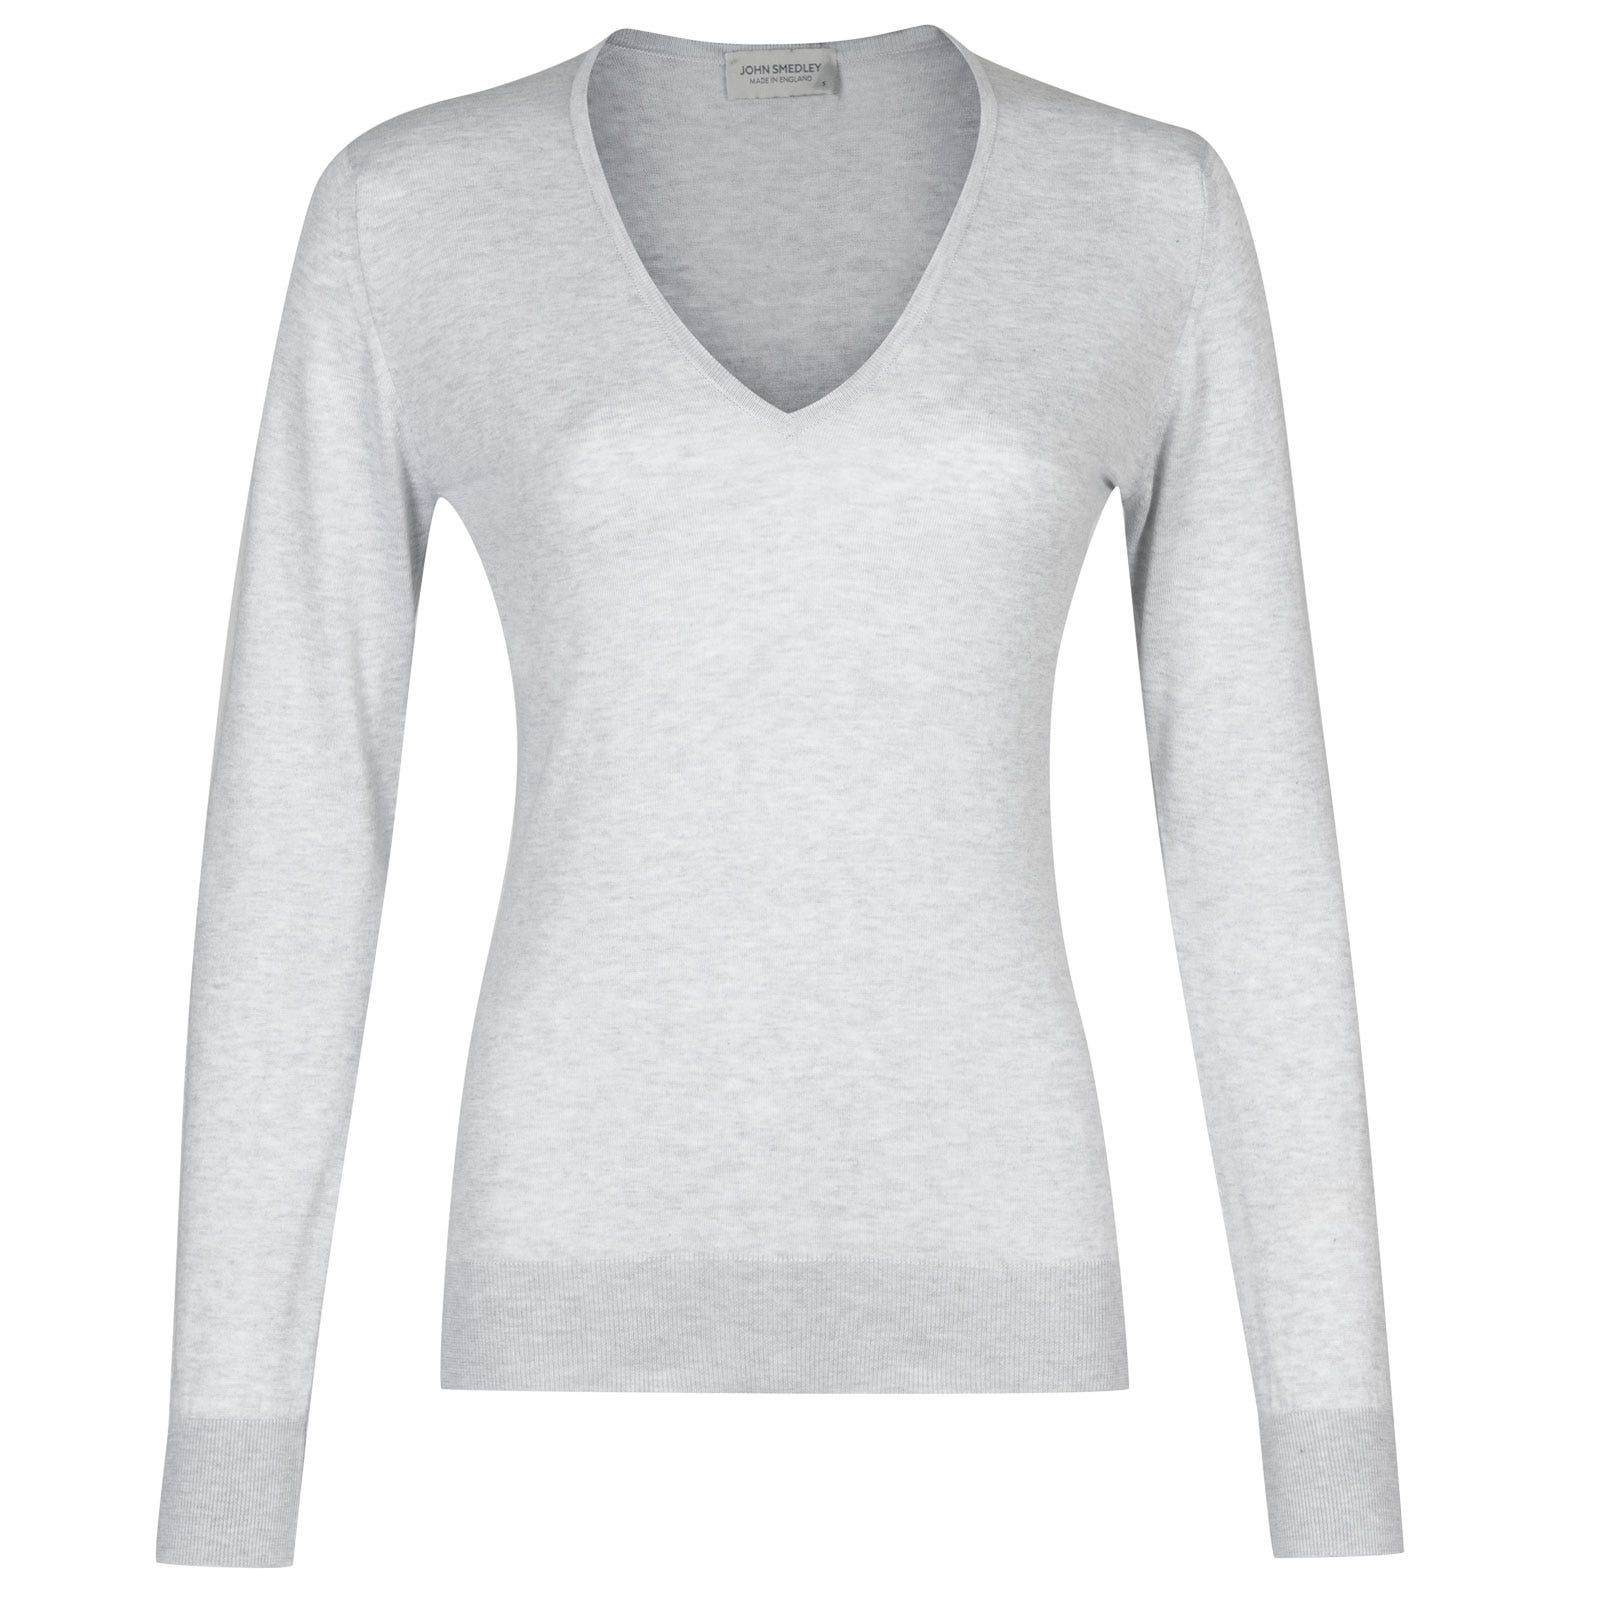 John Smedley putney Sea Island Cotton Sweater in Feather Grey-M